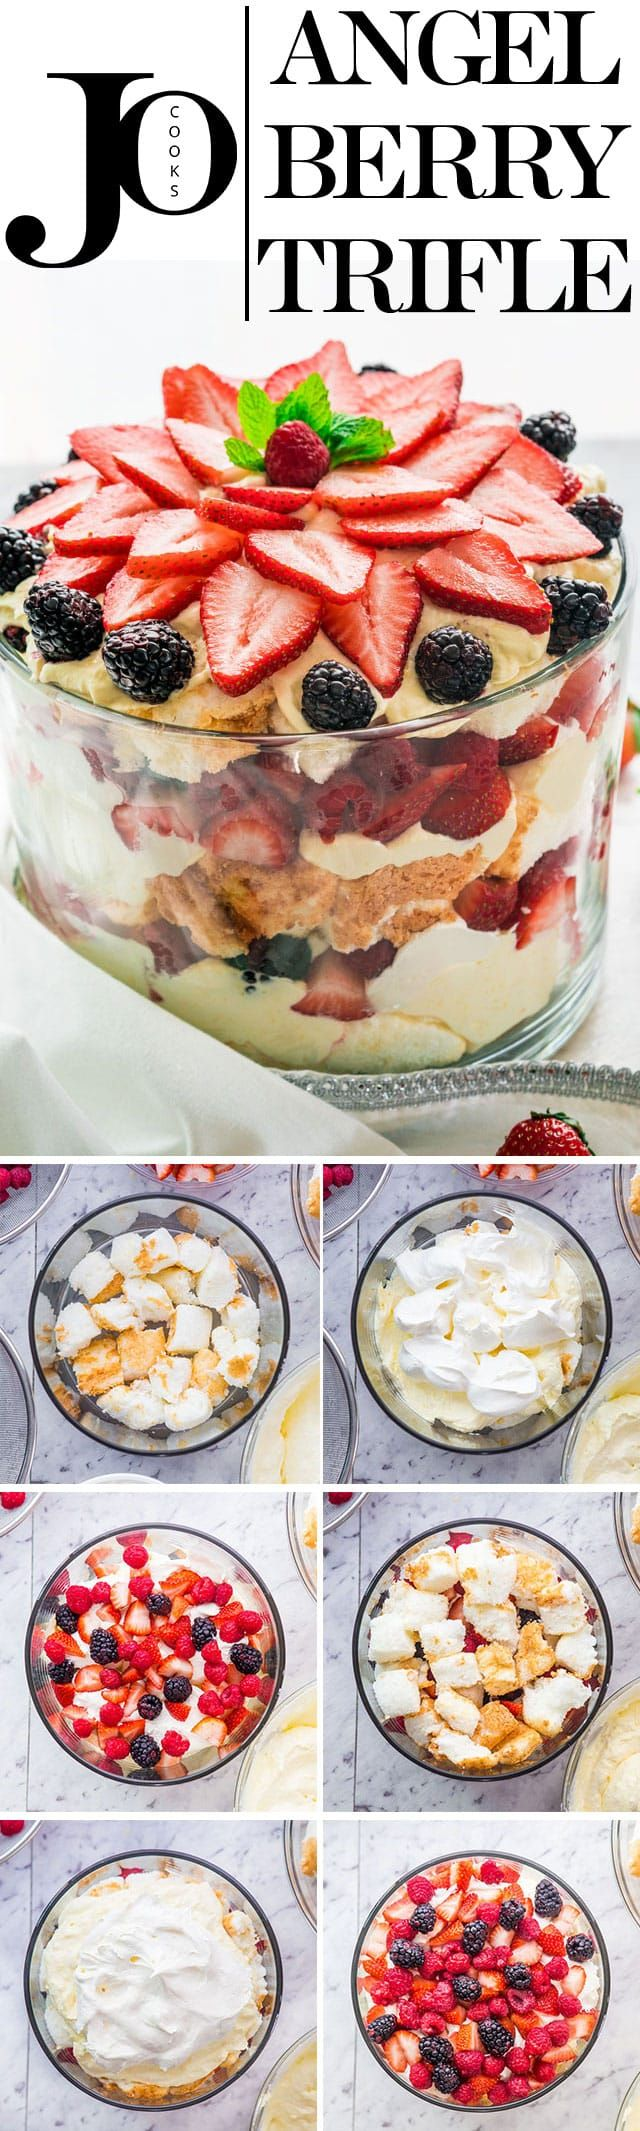 An Angel Berry Trifle that's perfect for Easter brunch made with fresh berries, angel food cake and an out of this world vanilla pudding and cream cheese custard. #trifle #easterbrunch via @jocooks